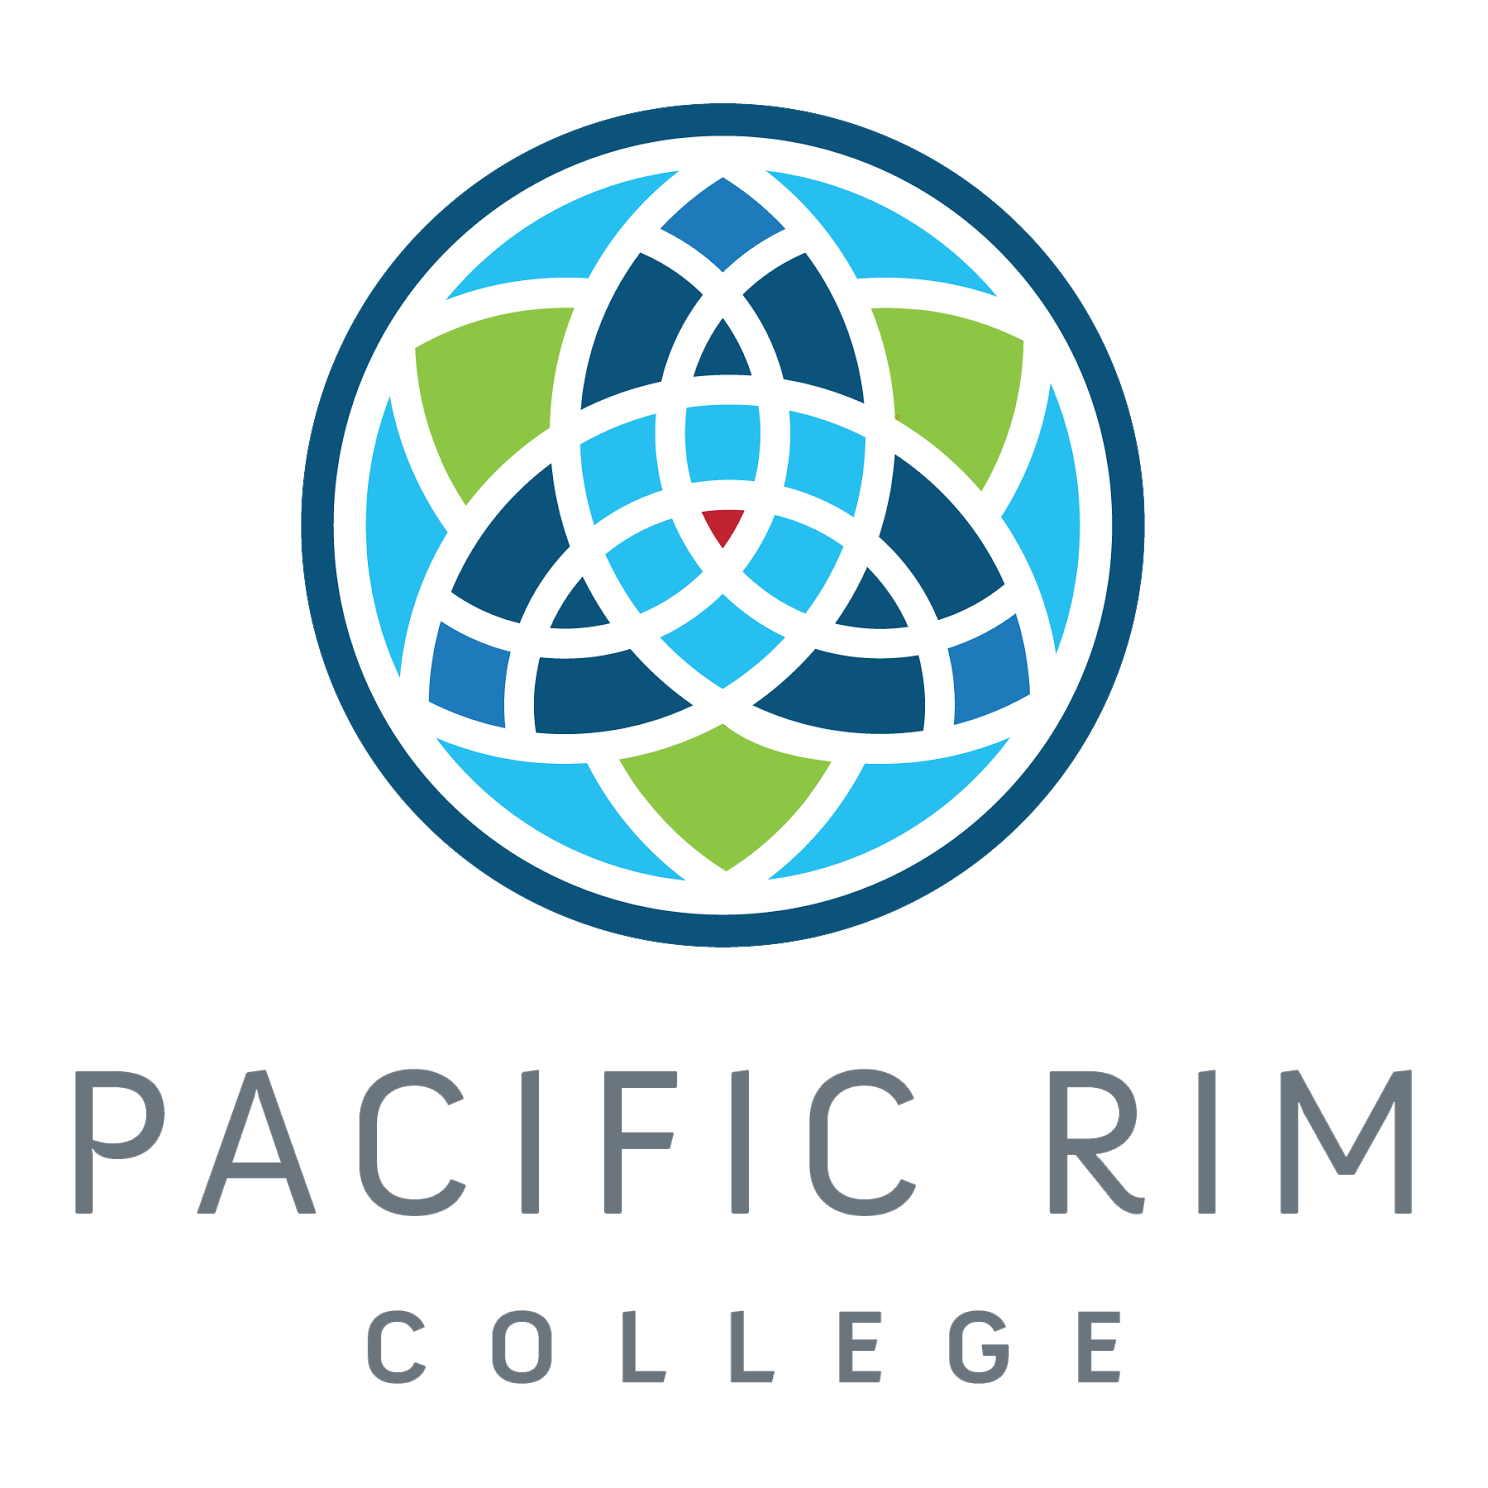 """Pacific Rim College is donating 2 workshops!   """"Pacific Rim College is a globally-recognized institution of Holistic Medicine and Sustainable Living located on Vancouver Island in beautiful Victoria, British Columbia."""" -Pacific Rim College"""